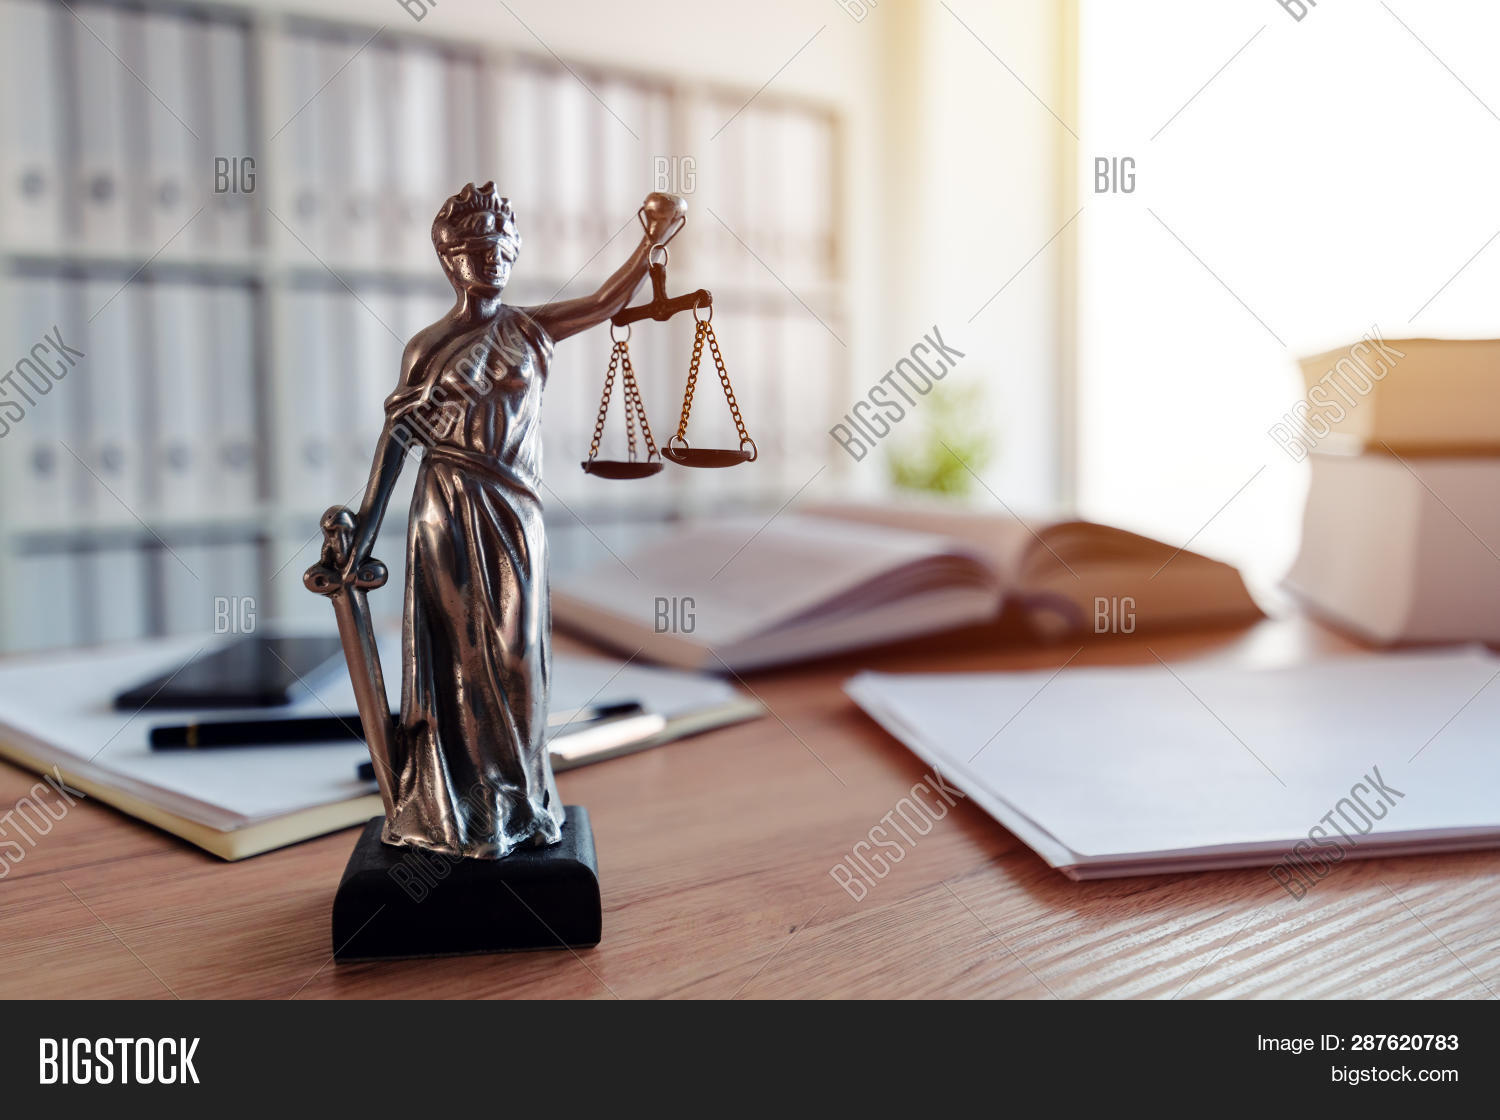 Justitia,Lady,advocate,attorney,balance,blindfolded,books,concept,court,figure,firm,force,judge,judgment,judicial,justice,law,lawyer,legal,legality,legislation,moral,nobody,notary,occupation,office,personification,profession,prosecution,prosecutor,scales,sculpture,solicitor,statue,sword,symbol,system,themis,verdict,workplace